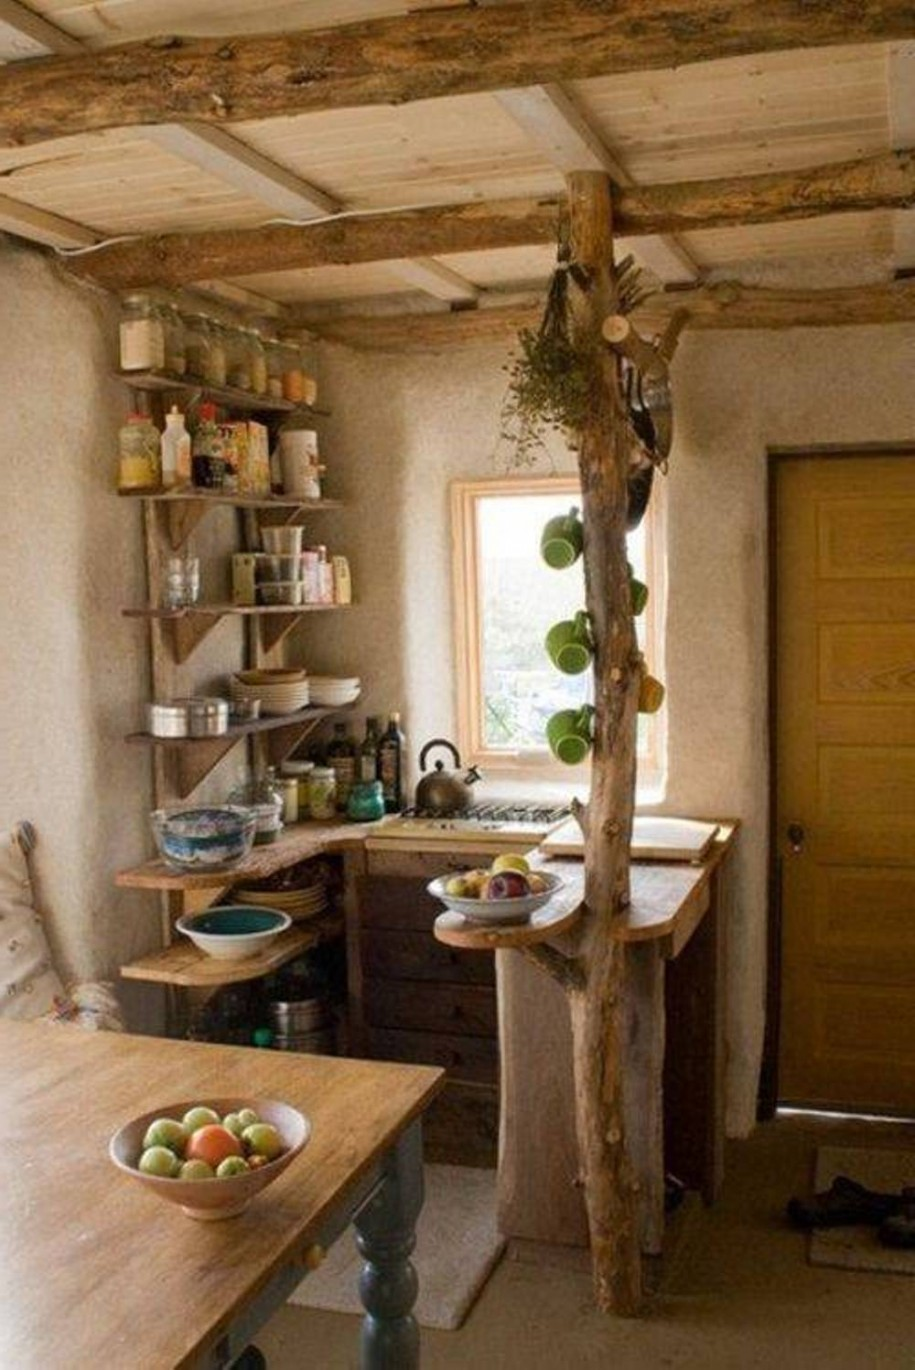 Graceful Mounted Shelve And Cabinet For Chic Rustic Kitchen Ideas